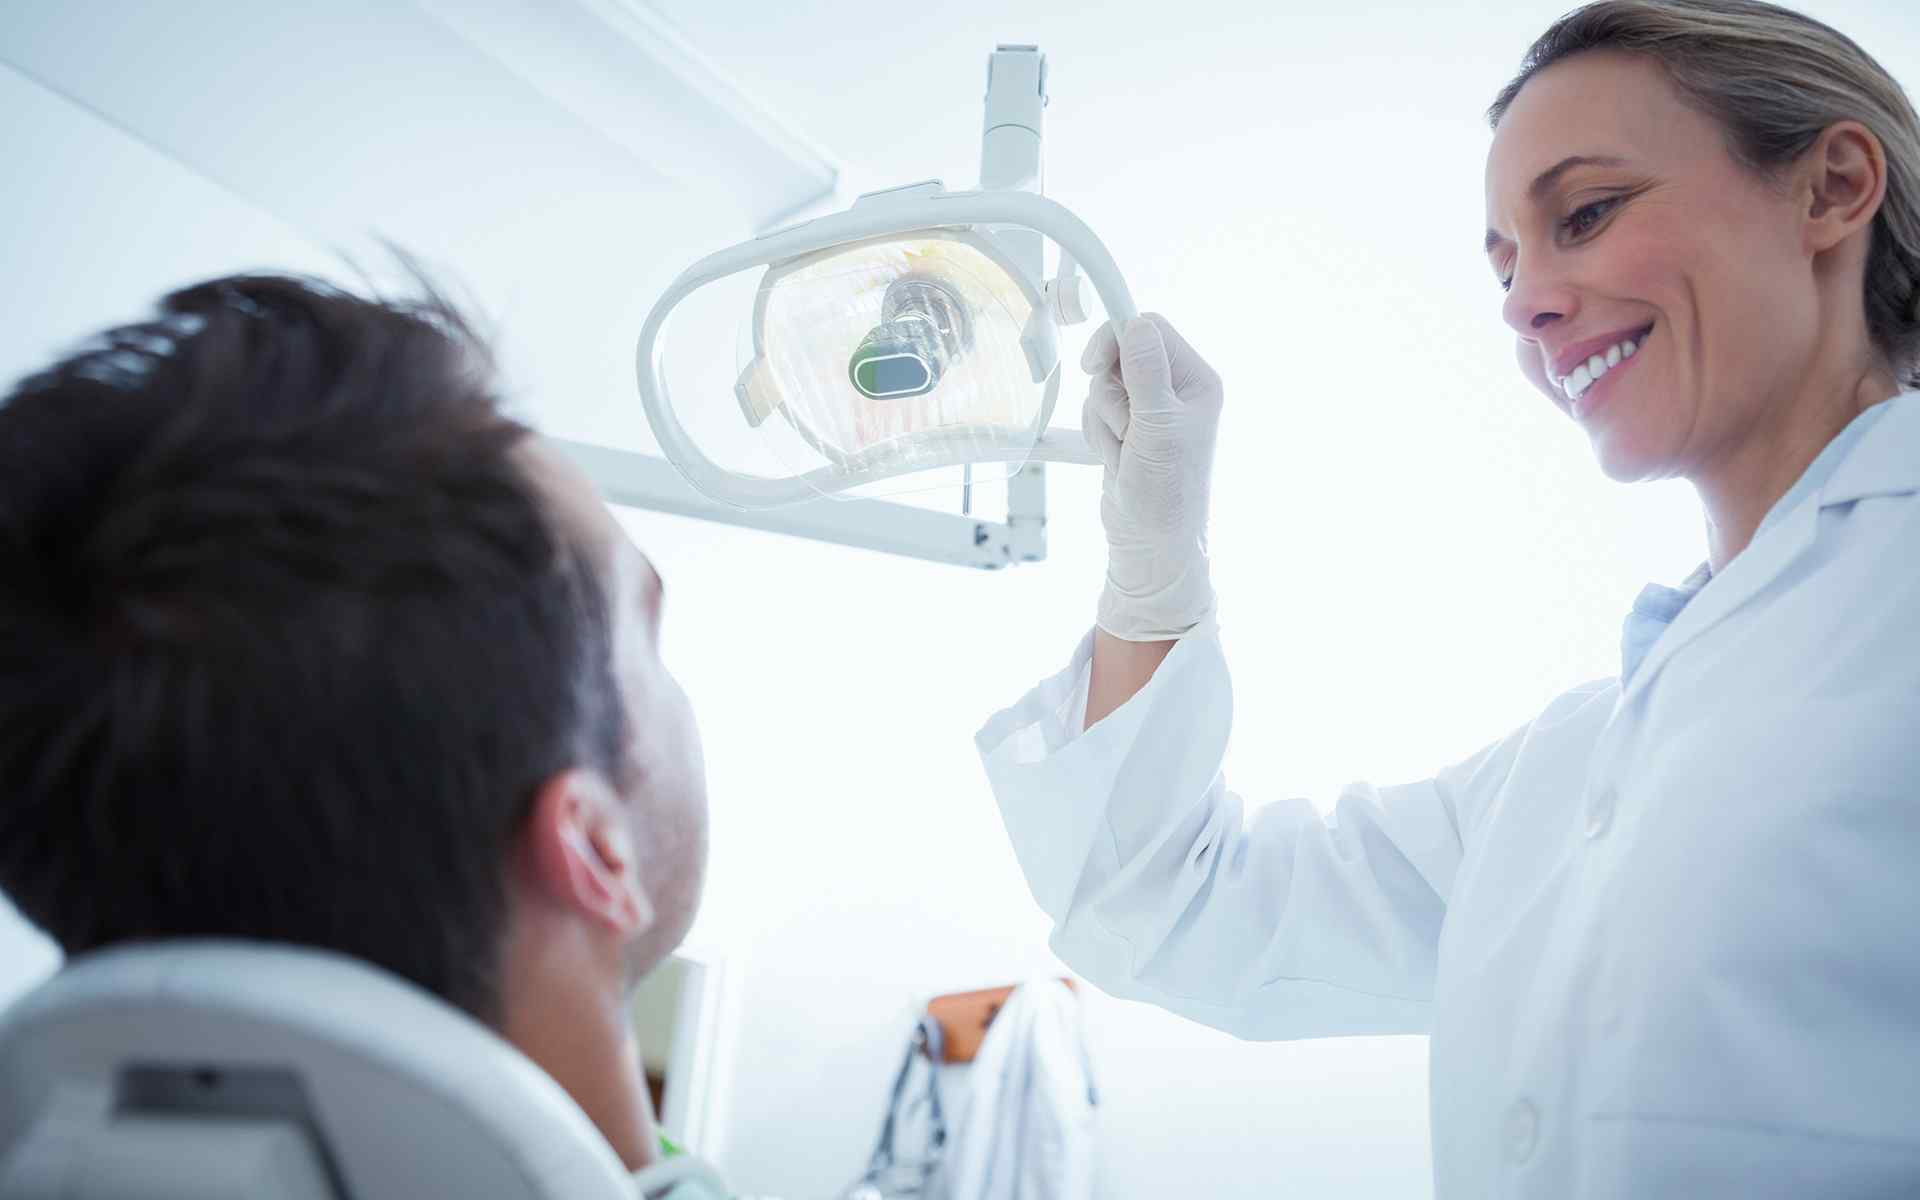 Dental hygienist adjusting dental lamp